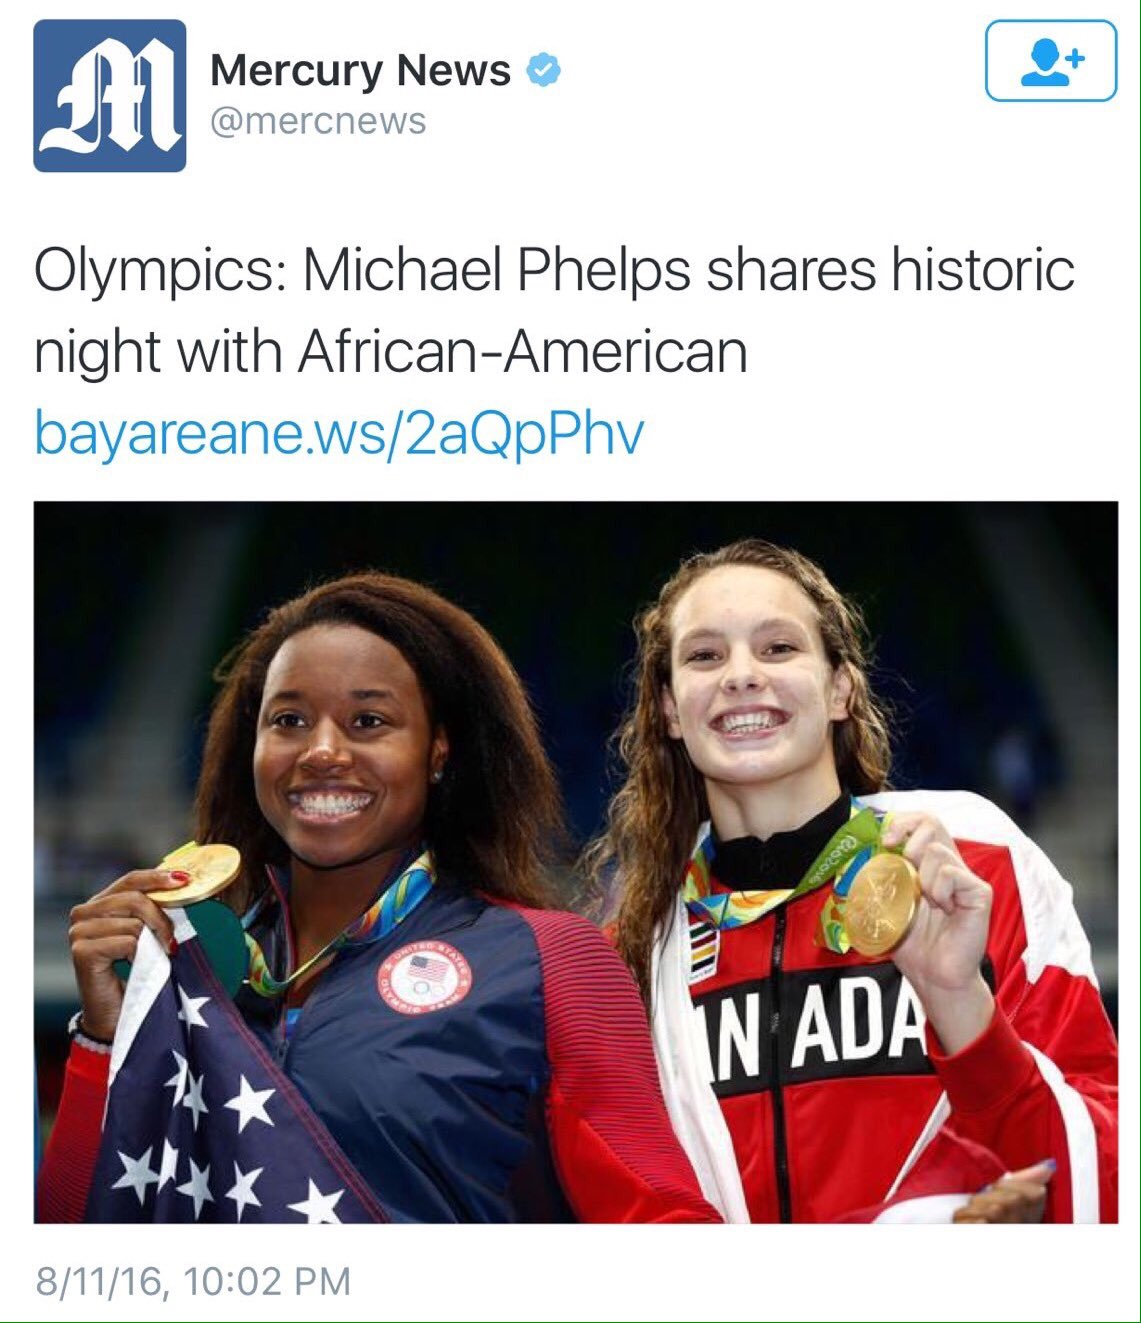 """Michael Phelps wins gold and so does some black chick."" Way to go, Merc! https://t.co/pqWMCnDvGb"